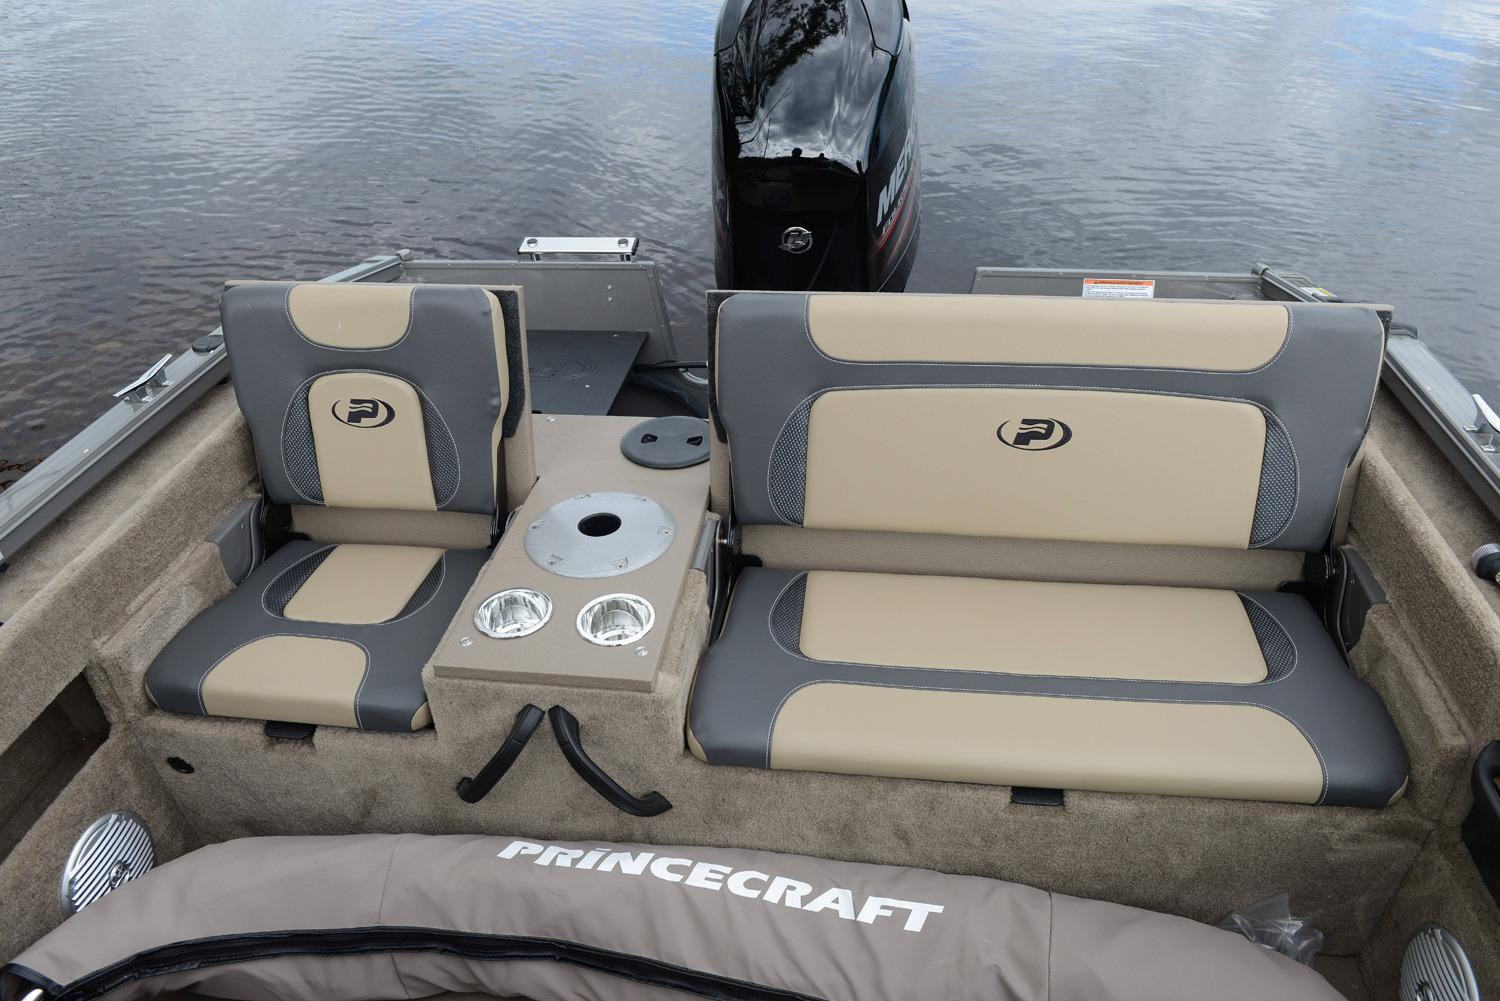 2016 Princecraft Sport 167 in Center Ossipee, New Hampshire